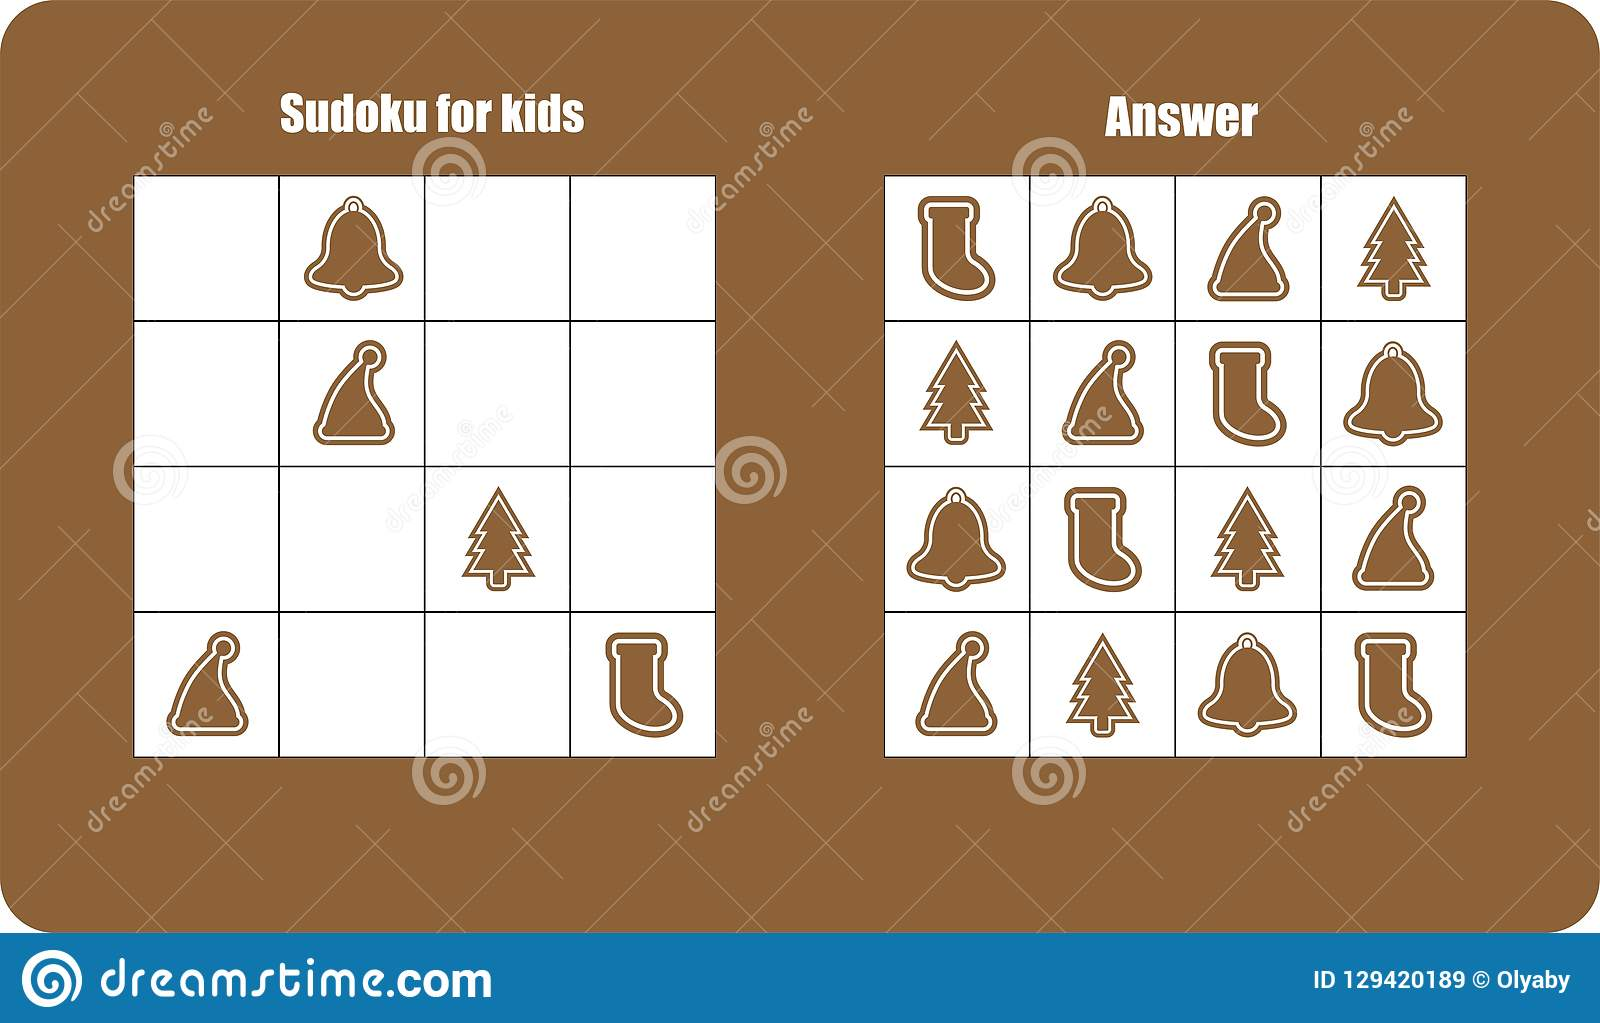 Sudoku Game With Christmas Pictures Gingerbread For